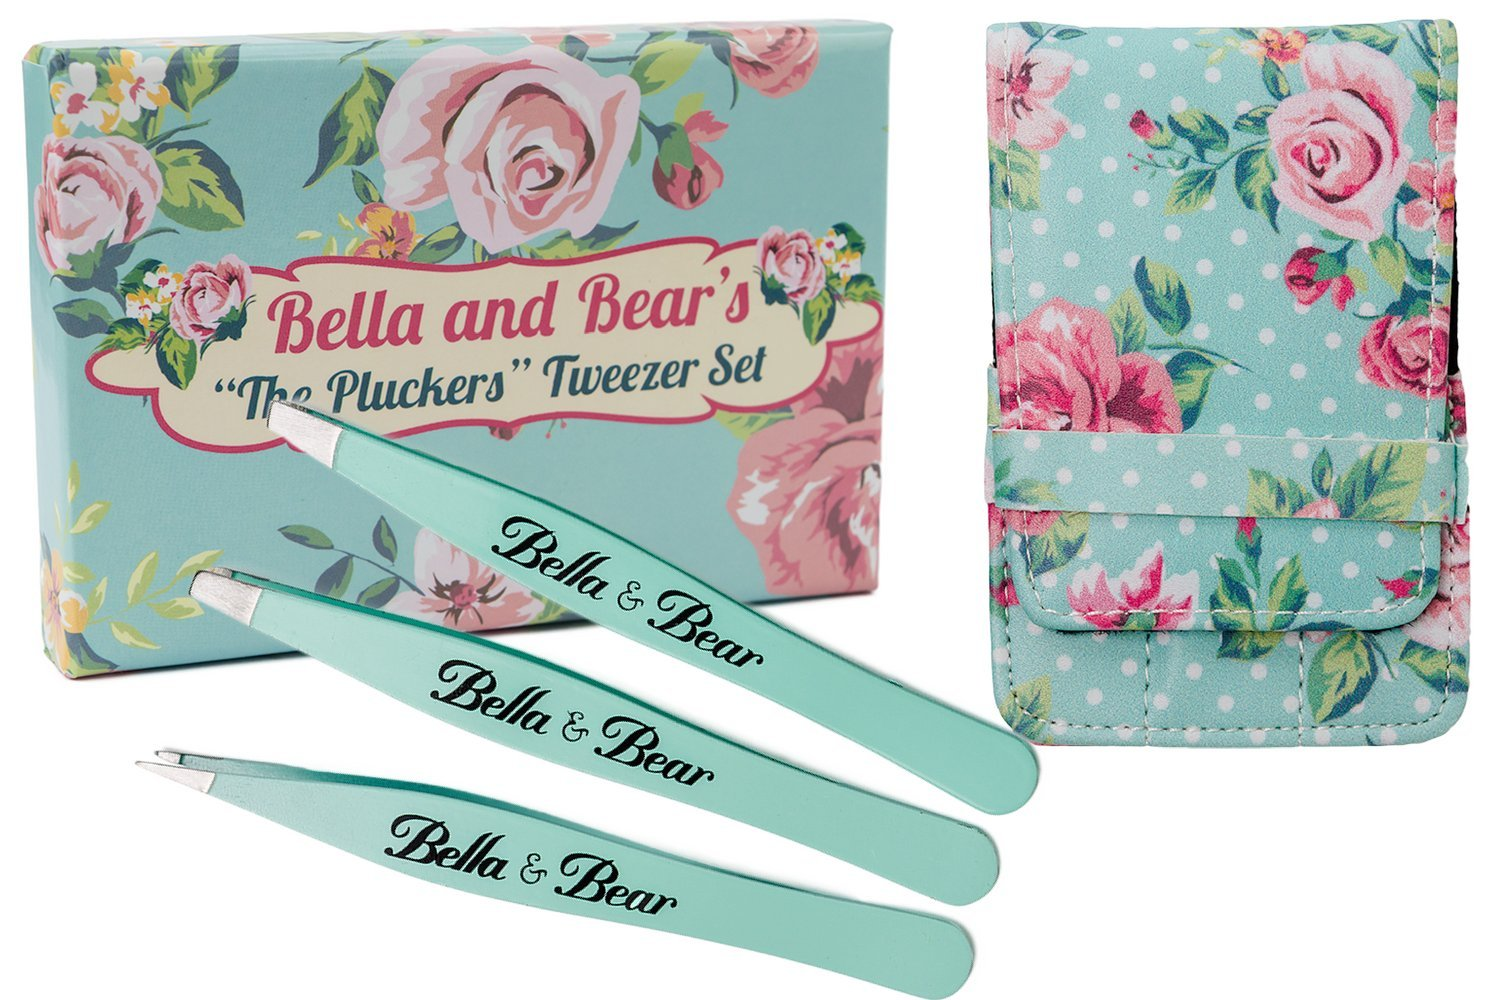 Eyebrow Tweezers Set By Bella and Bear. Stainless Steel 3 Piece Tweezers Set With Case, Includes Slant, Pointed and Flat Tip Tweezers TW1301